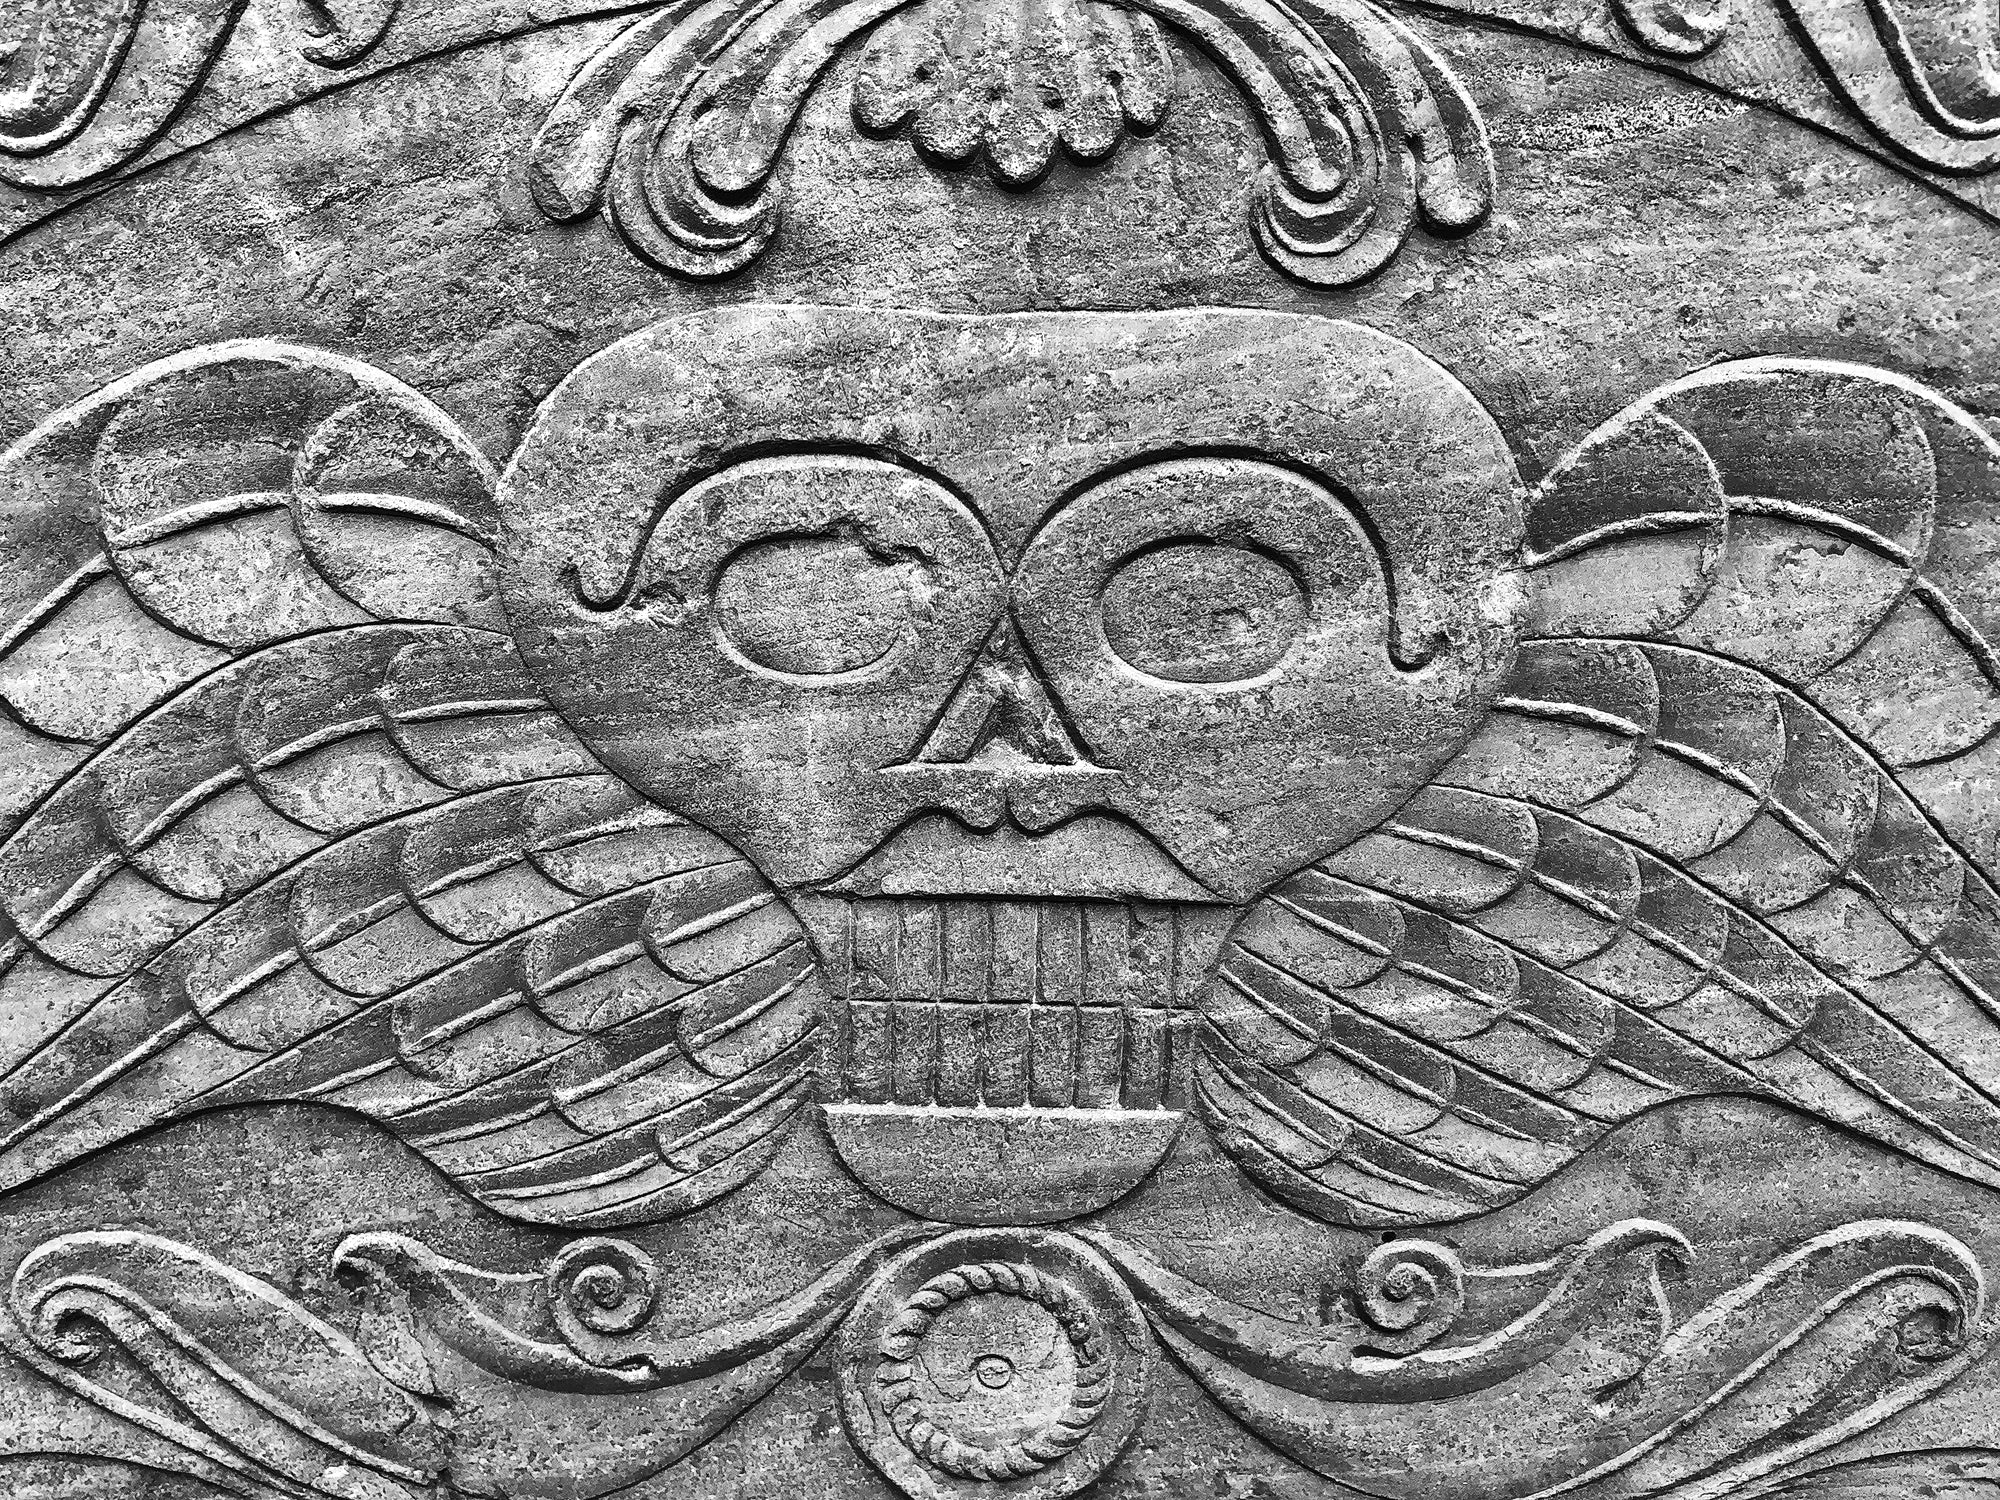 Winged Skull Gravestone Design Mid-1700s - Black and White Photograph by Keith Dotson. Buy a fine art print.